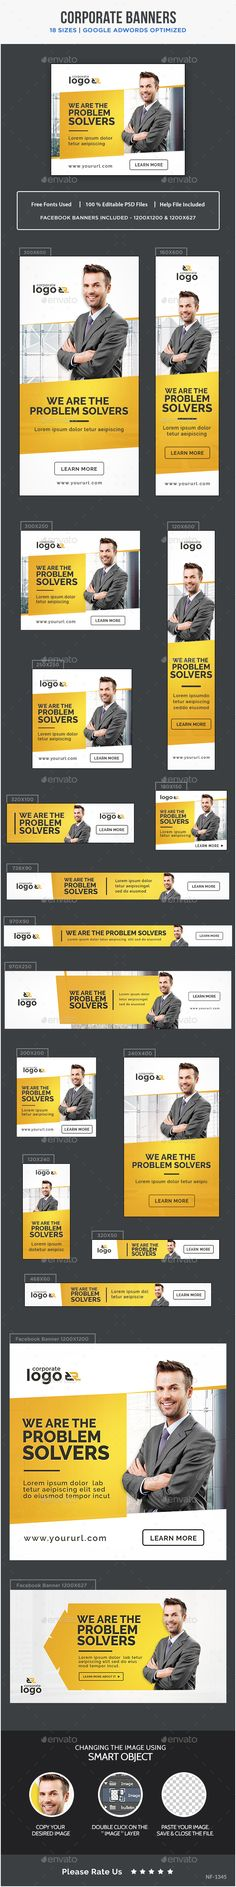 Corporate Banners Template PSD. Download here: http://graphicriver.net/item/corporate-banners/16584101?ref=ksioks